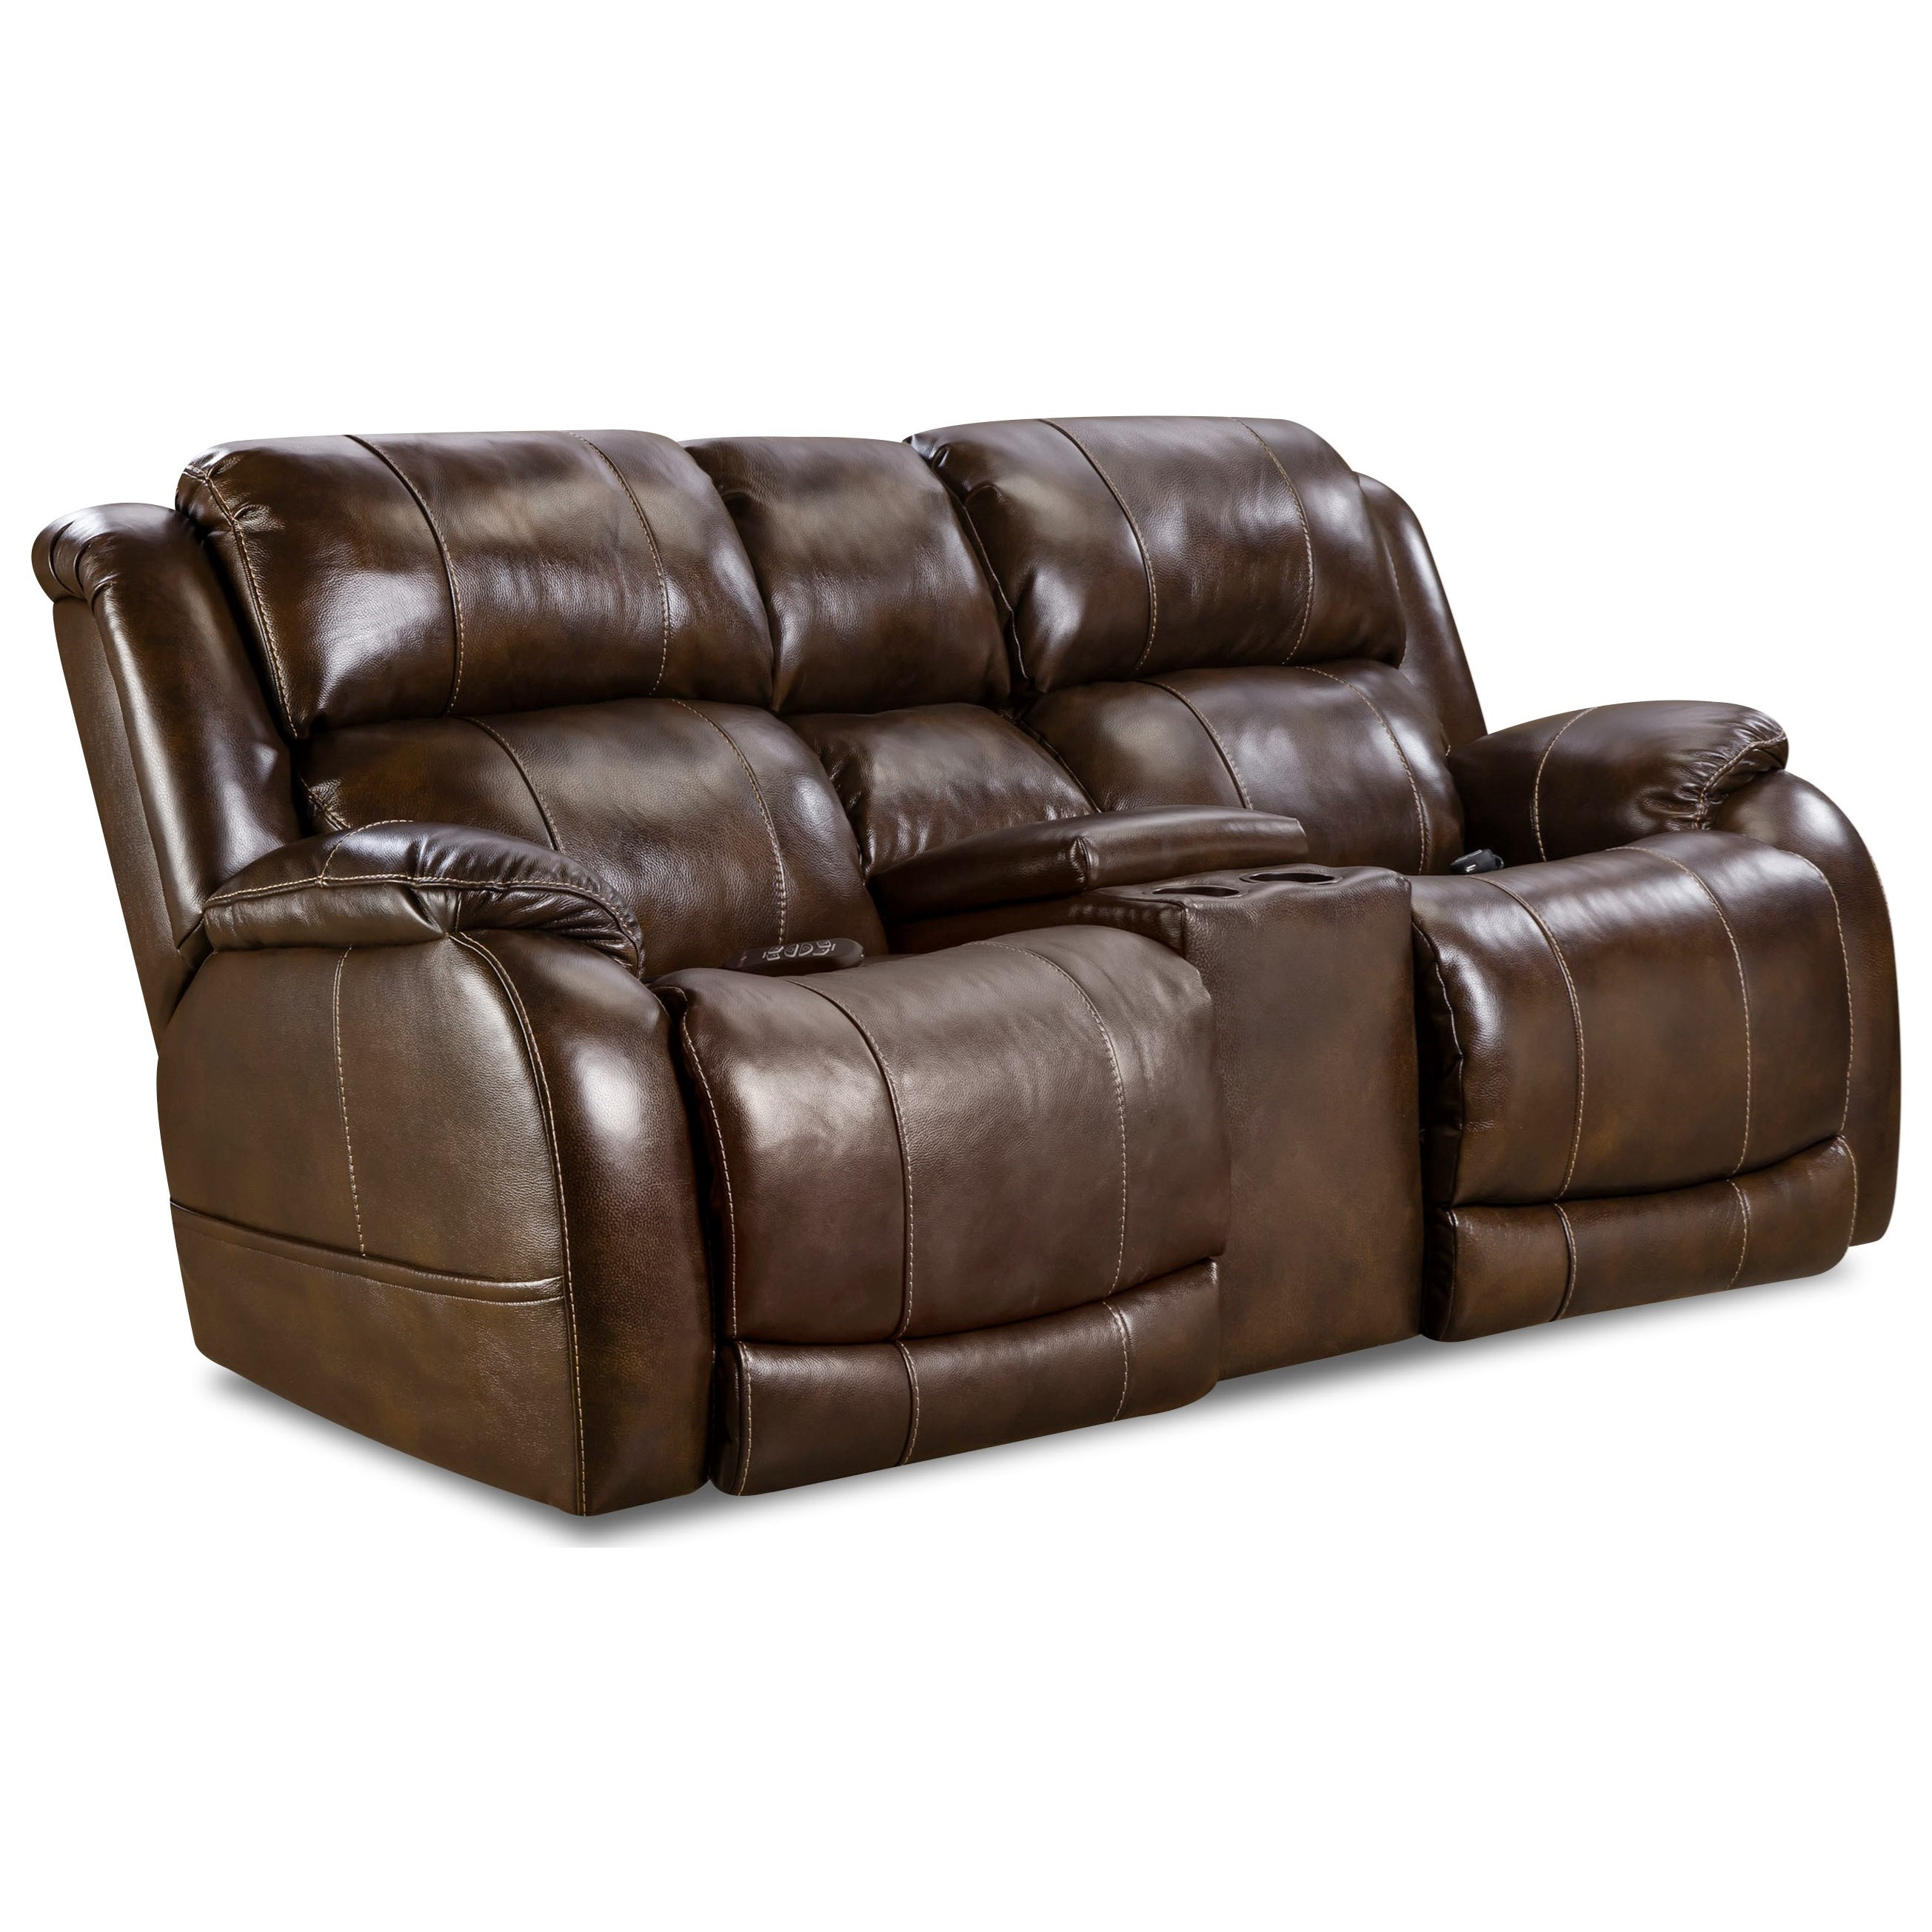 HomeStretch 170 Collection Power Reclining Console Loveseat - Item Number: 170-57-21